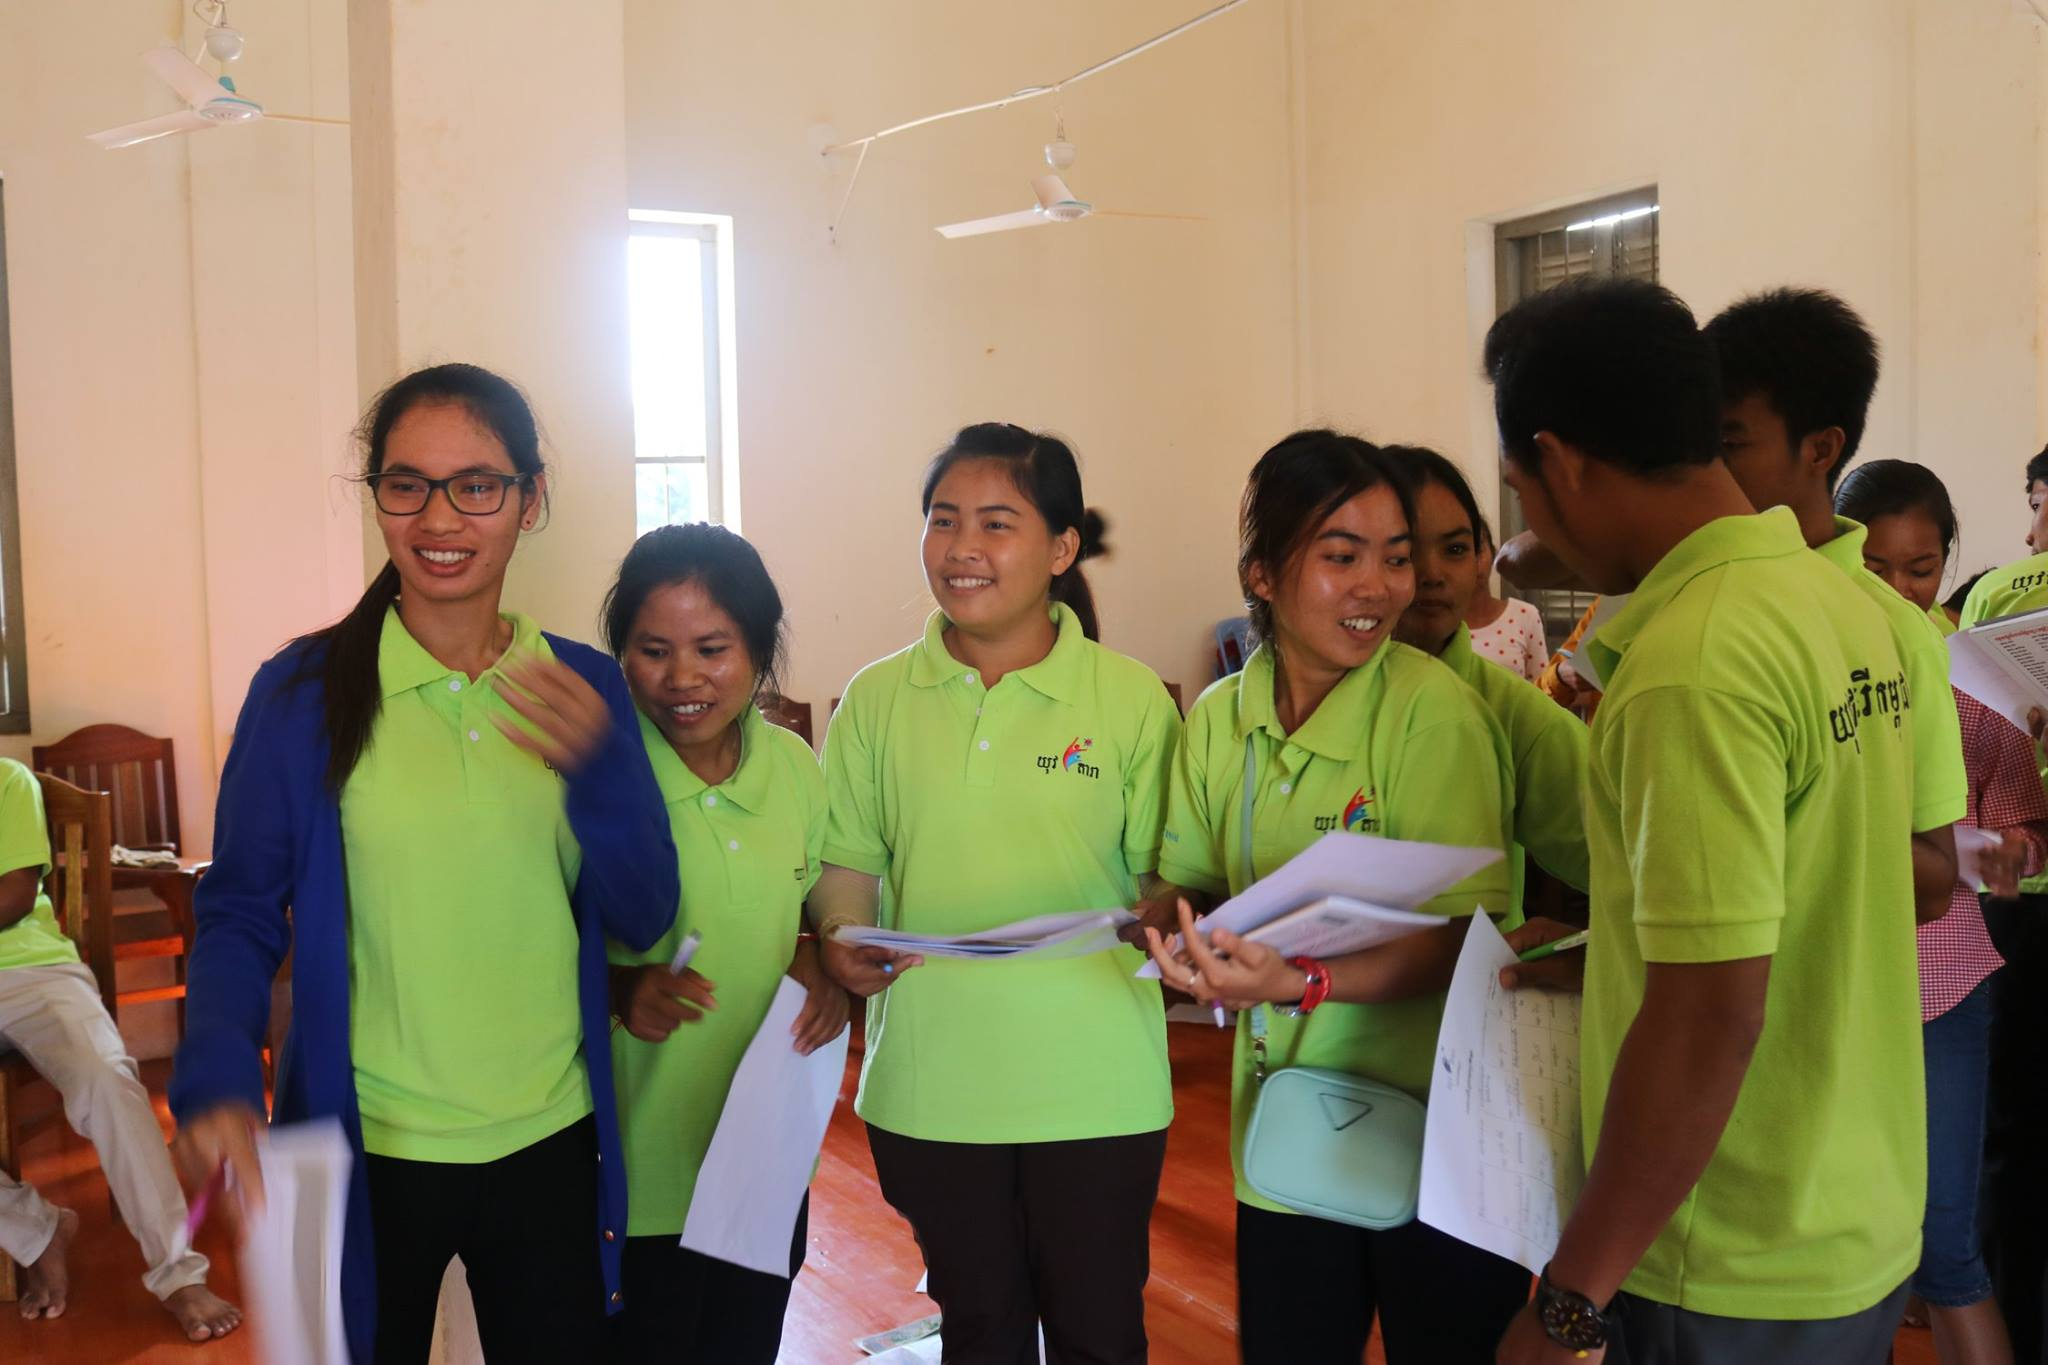 youth in cambodia Pact cambodia is committed to developing quality publications that address pressing development issues in cambodia our publications synthesize existing knowledge on a particular topic youth in cambodia a force for change cristina mansfield, heng kimhuch.